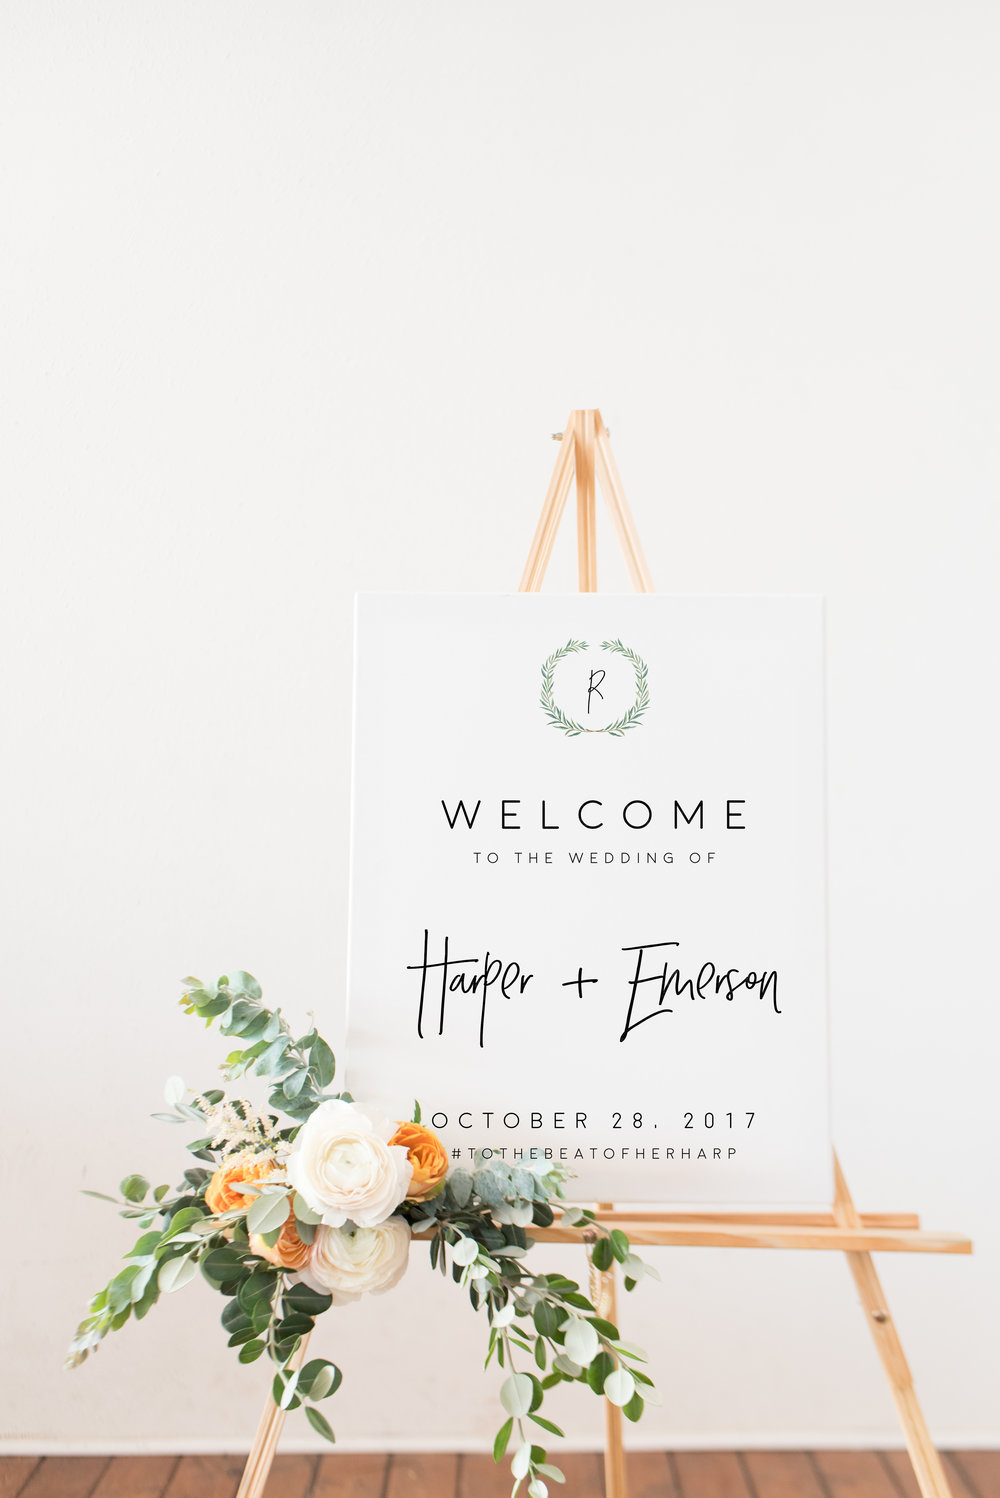 Welcome-greenery-mockup-3.jpg